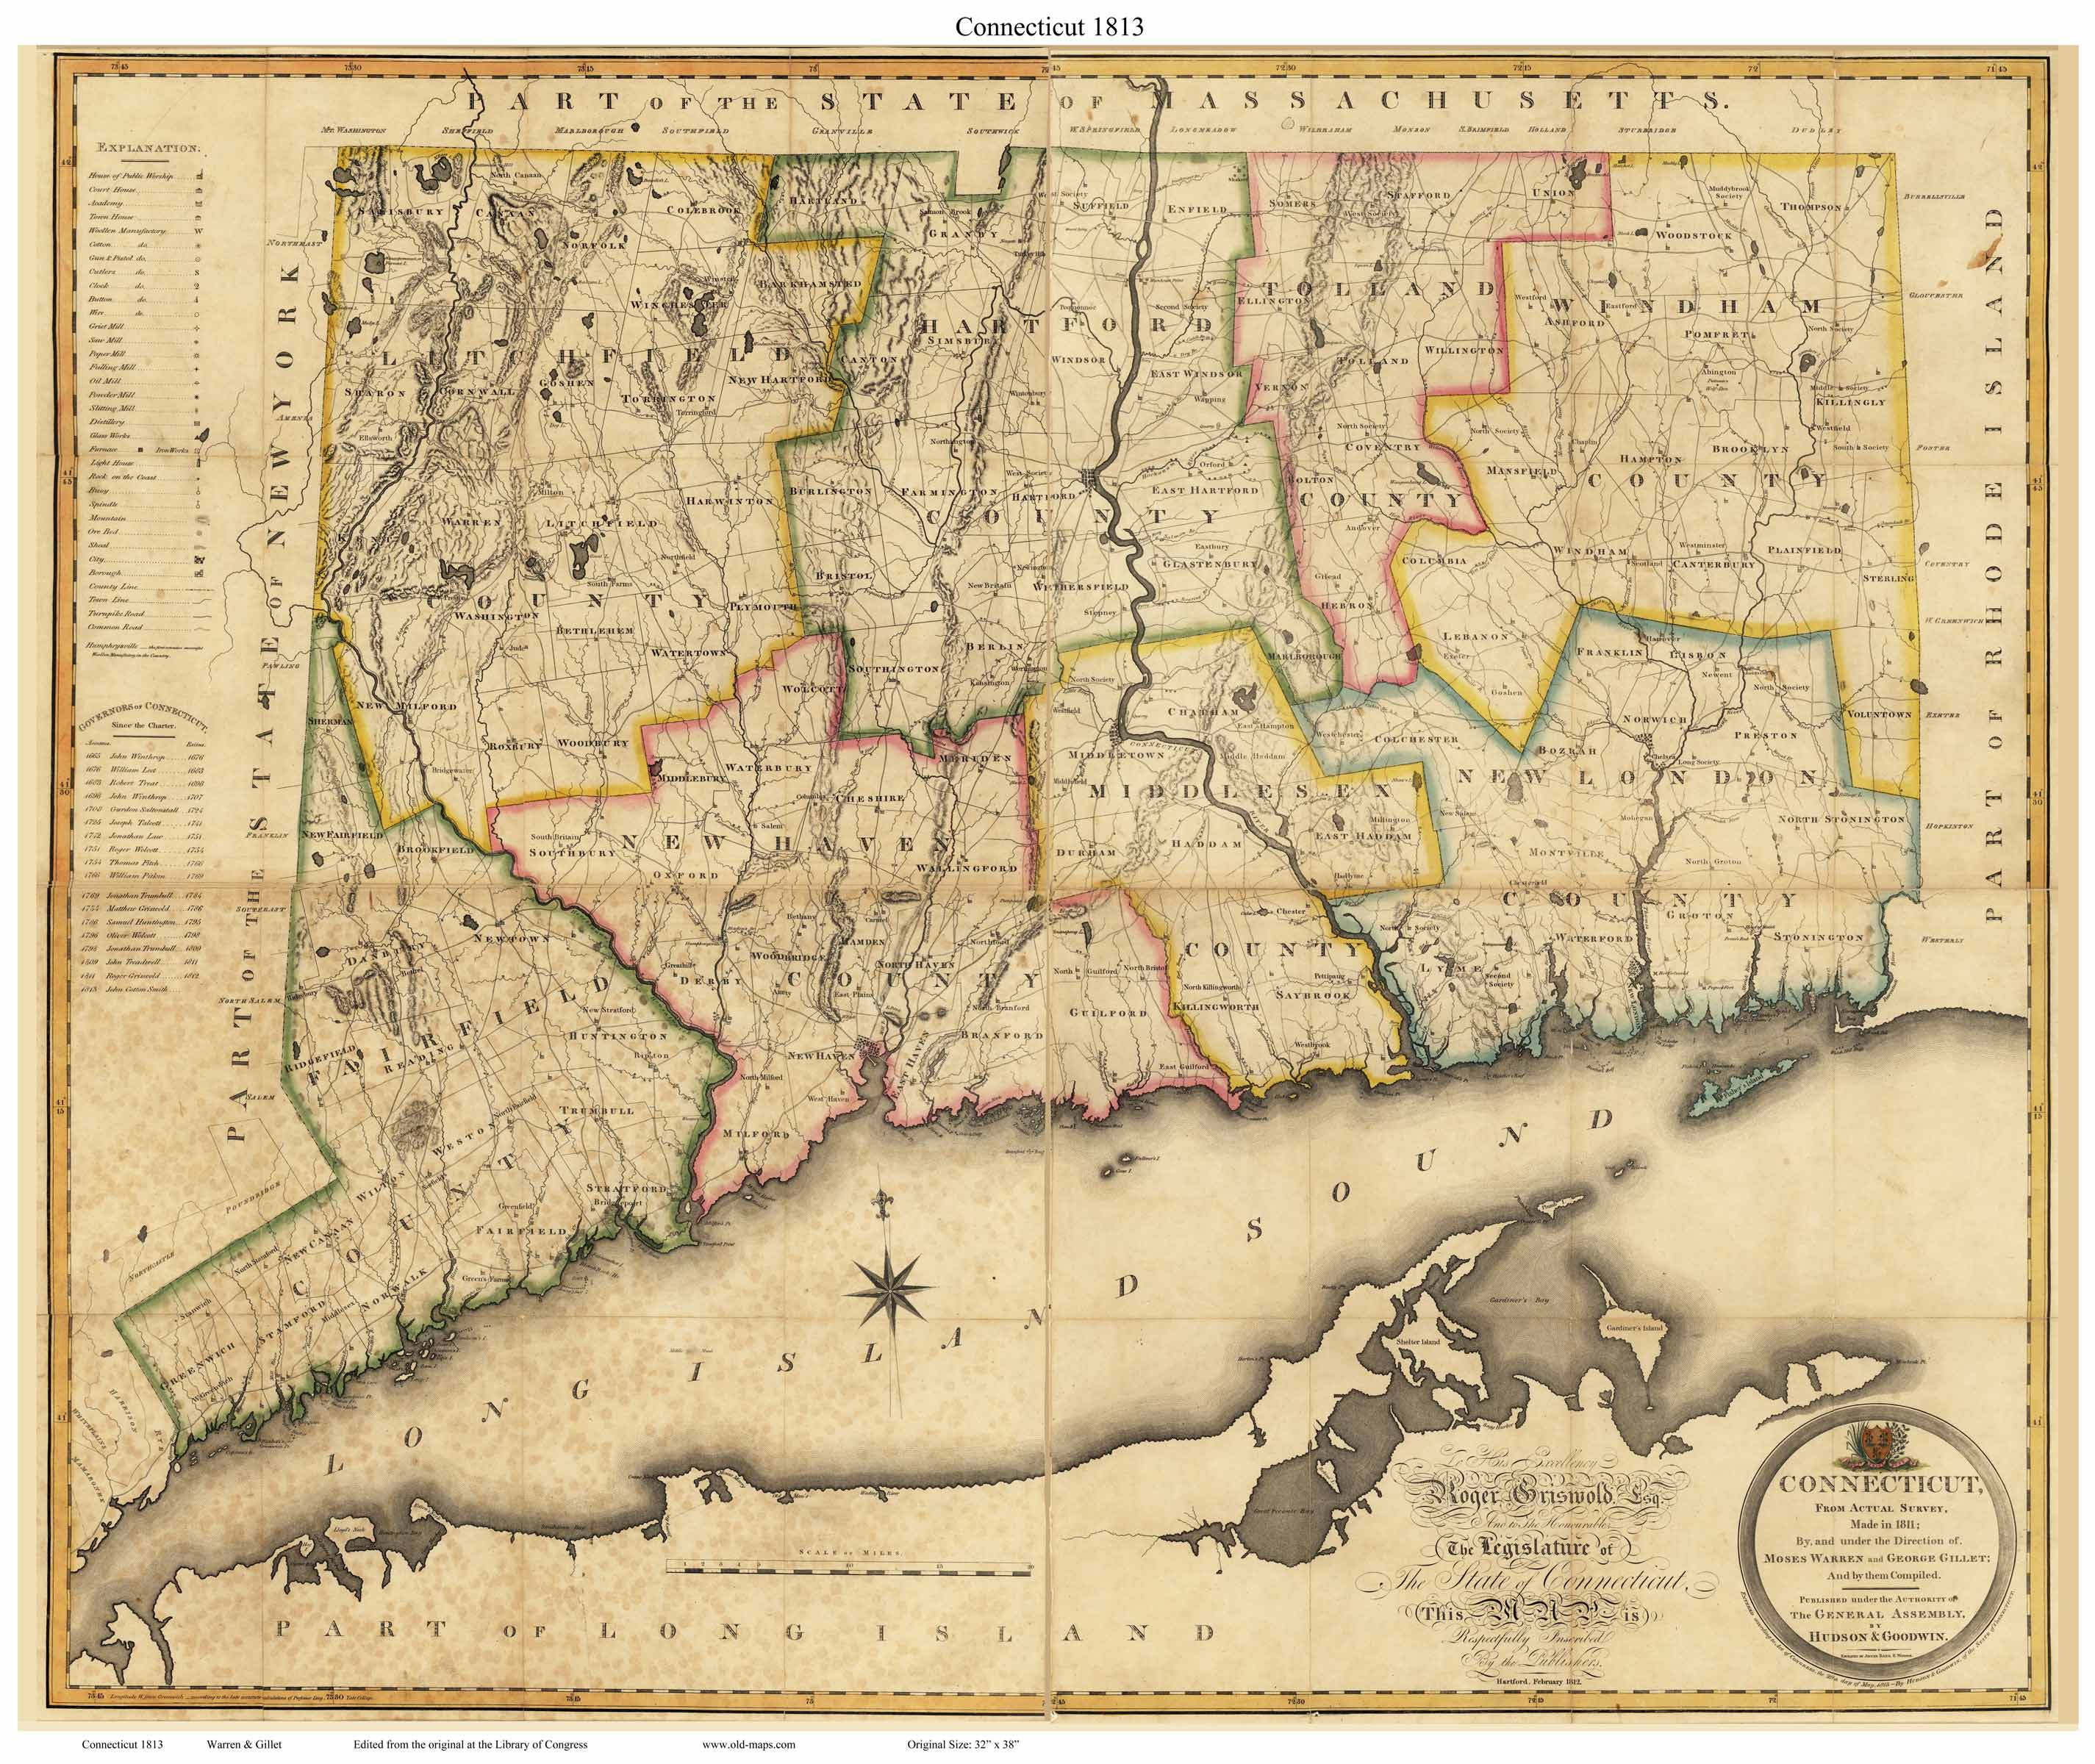 Old State Map Of Connecticut 1813 Warren Gillet